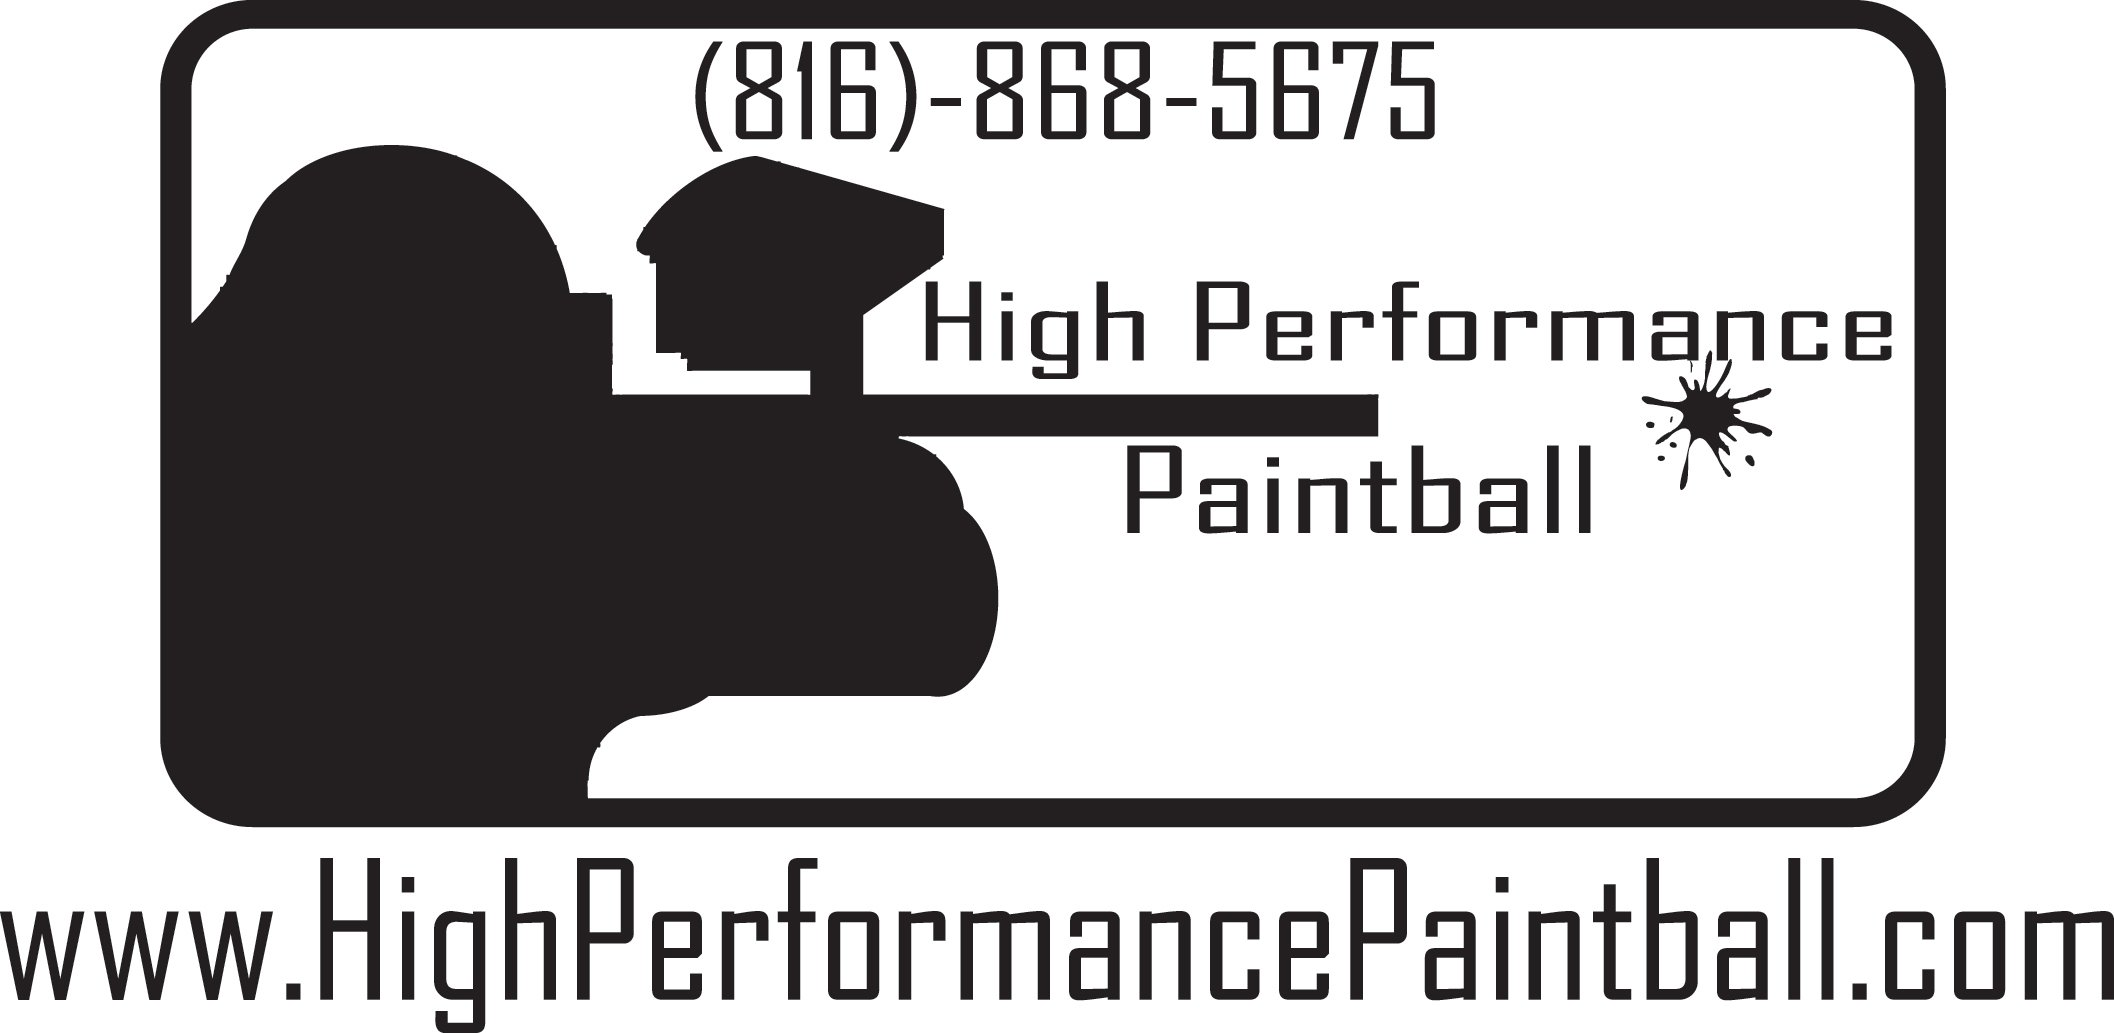 High Performance Paintball